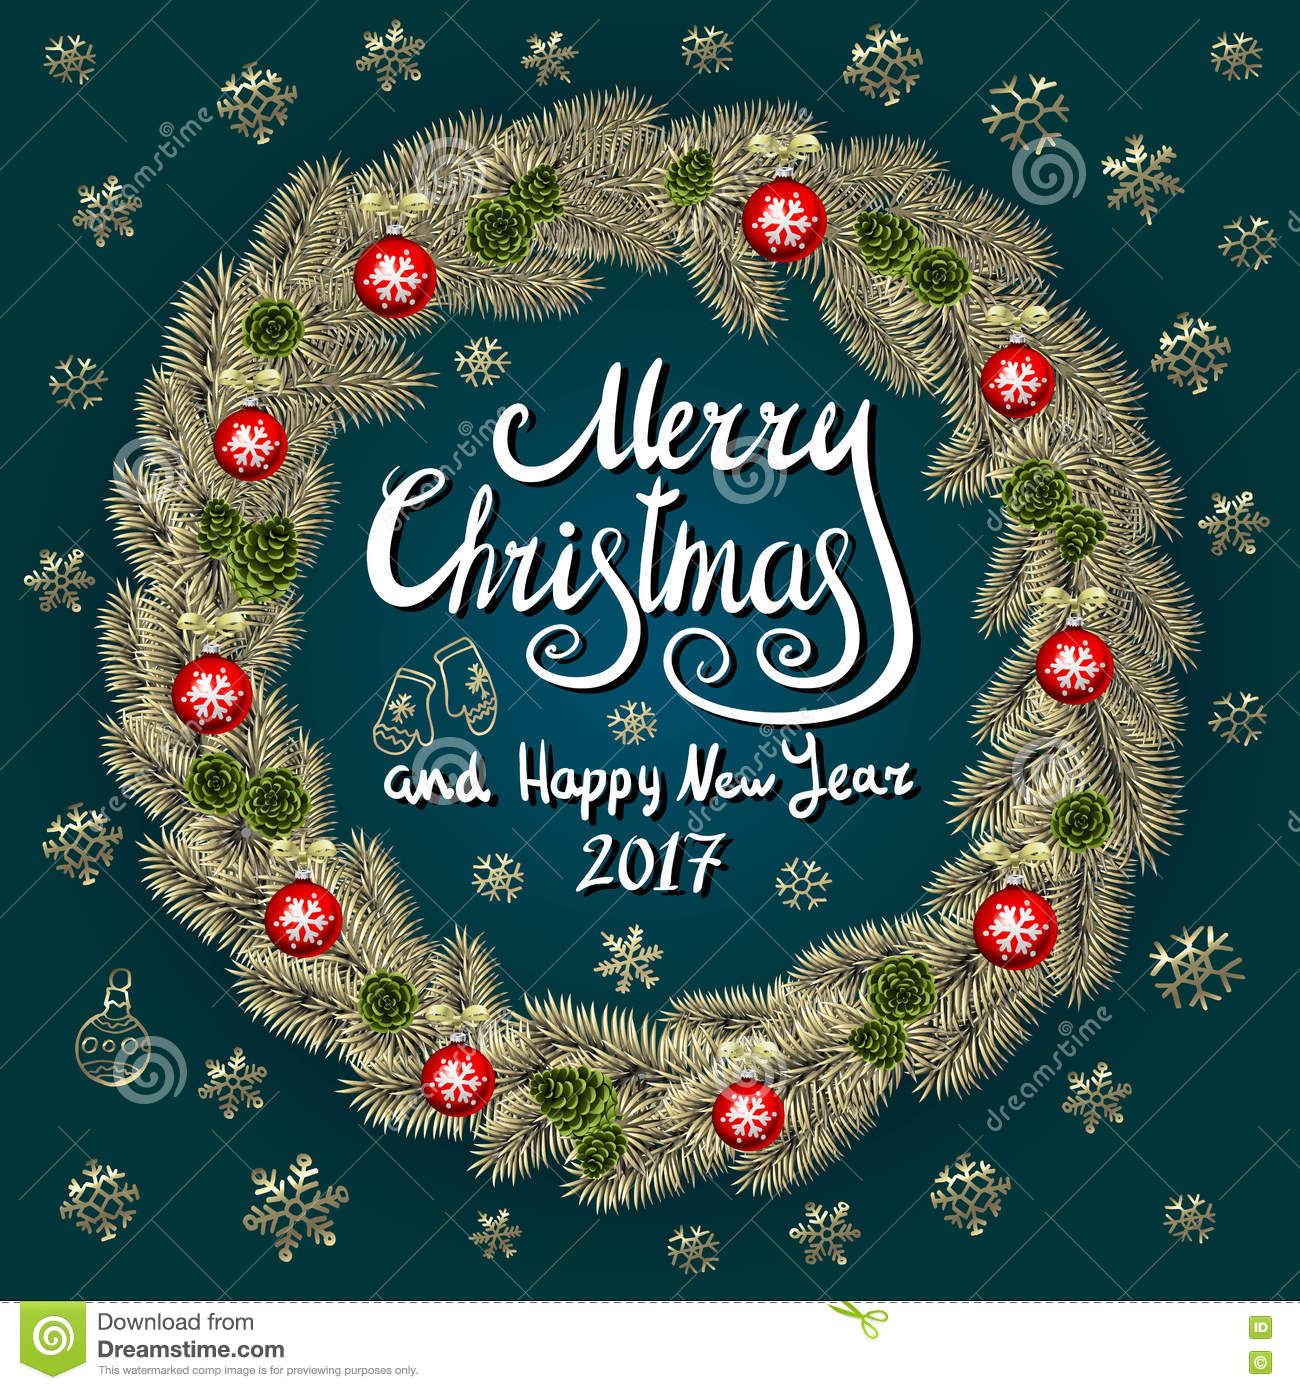 Merry Christmas And Happy New Year 2017 Vintage Background With ...